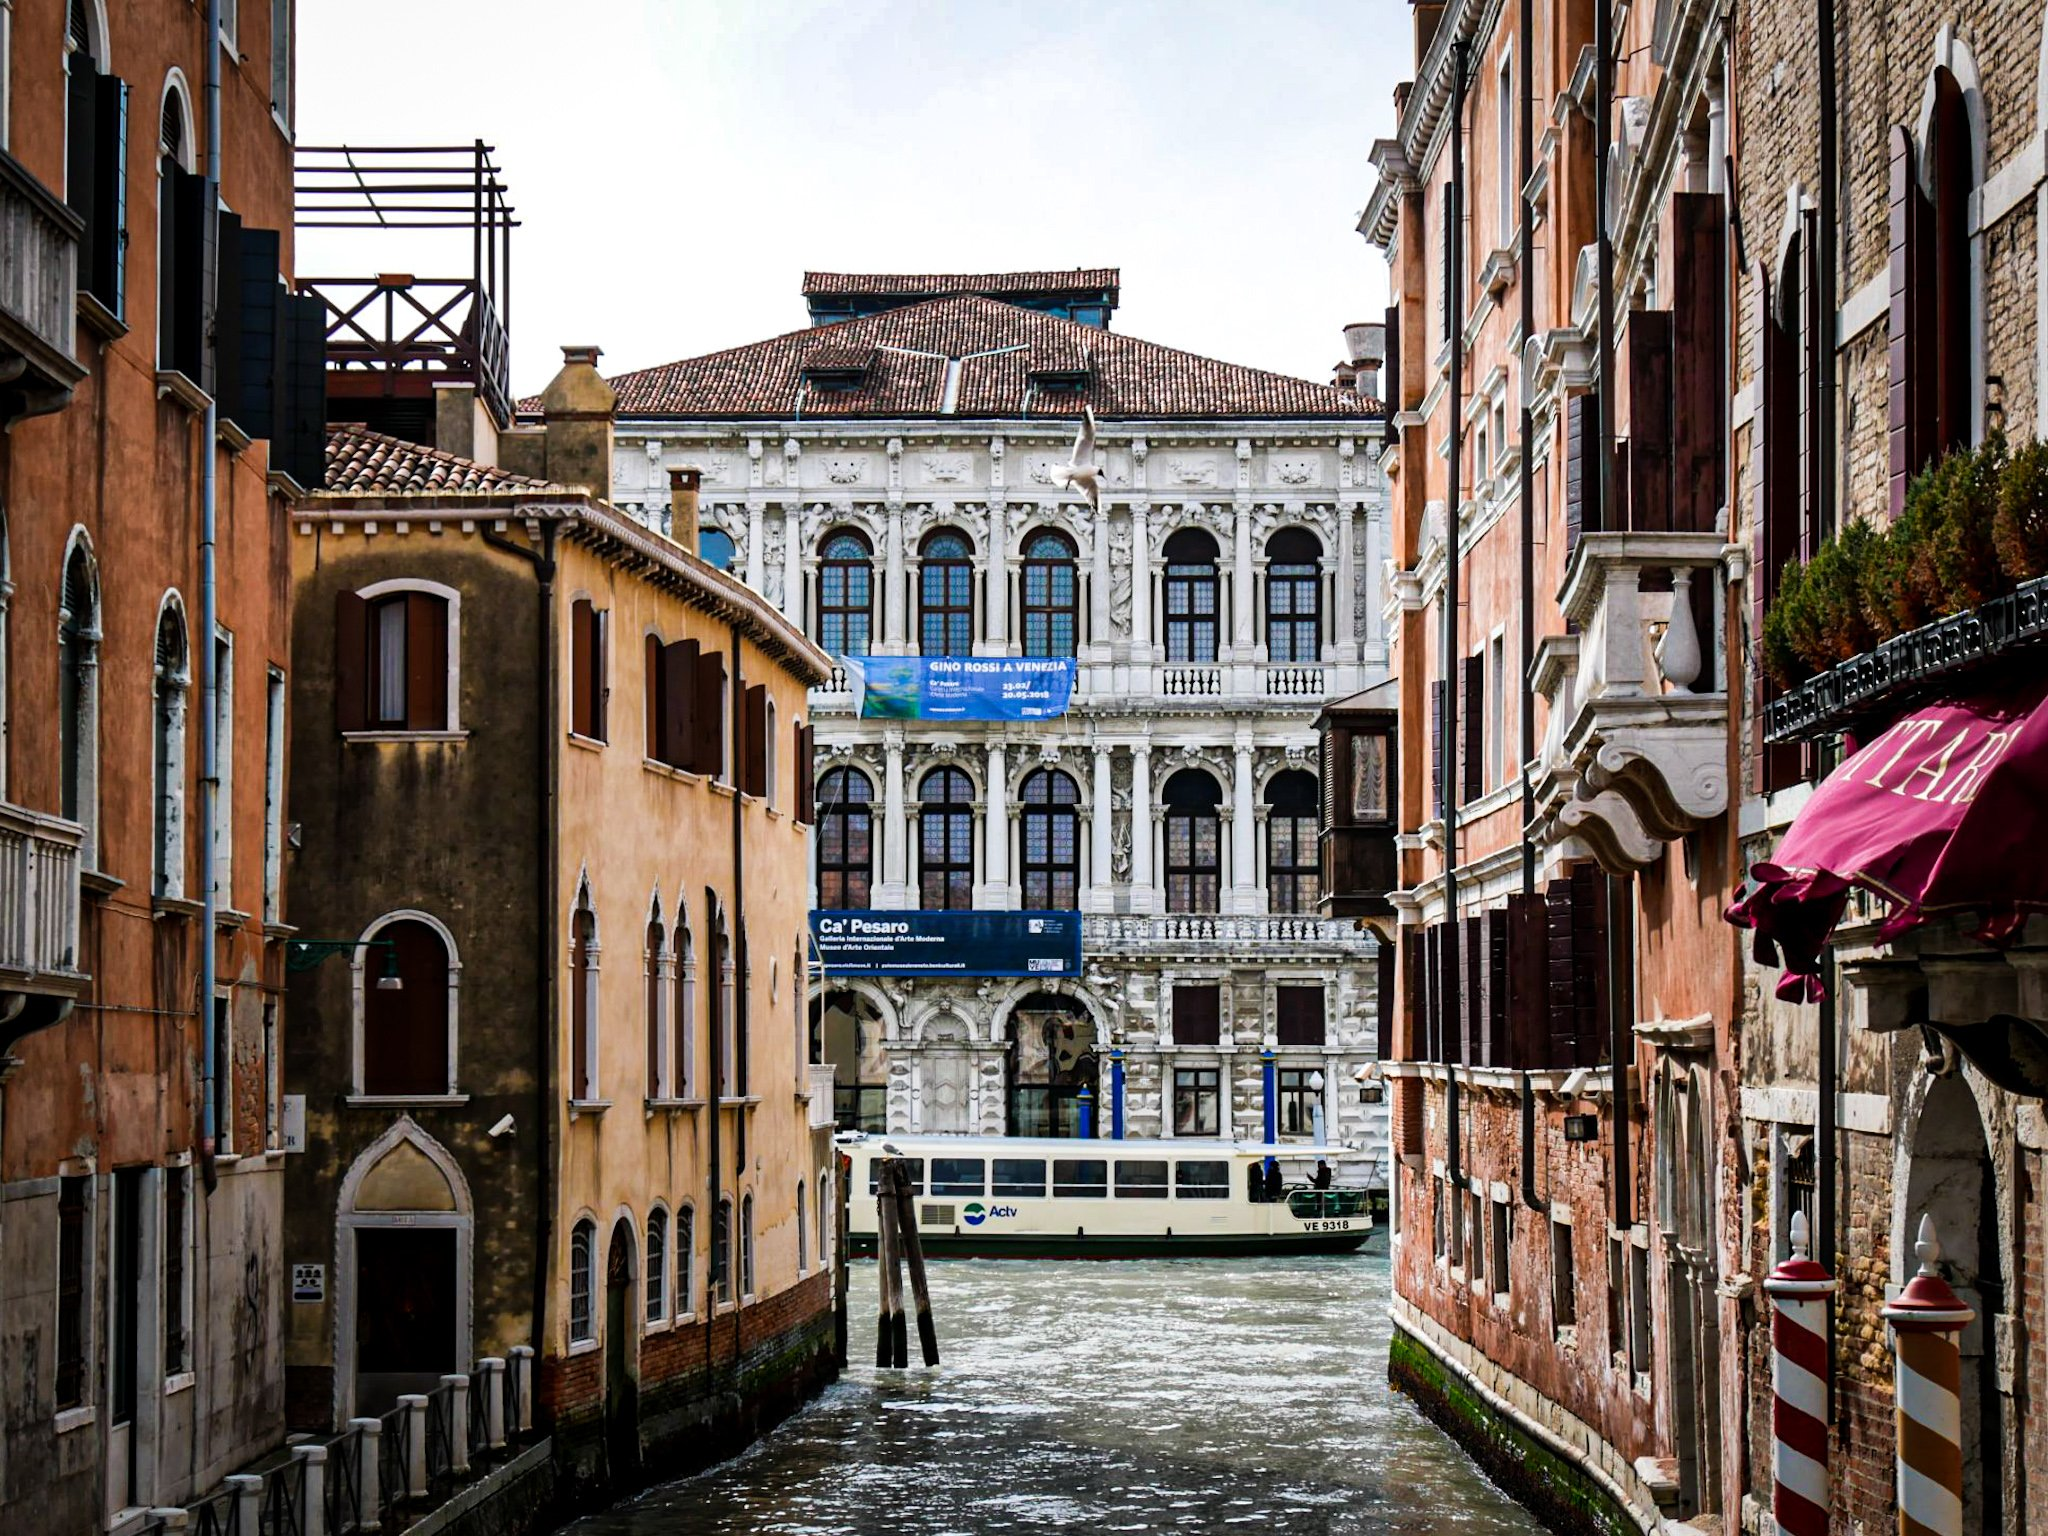 What to do in Venice? Ca' Pesaro